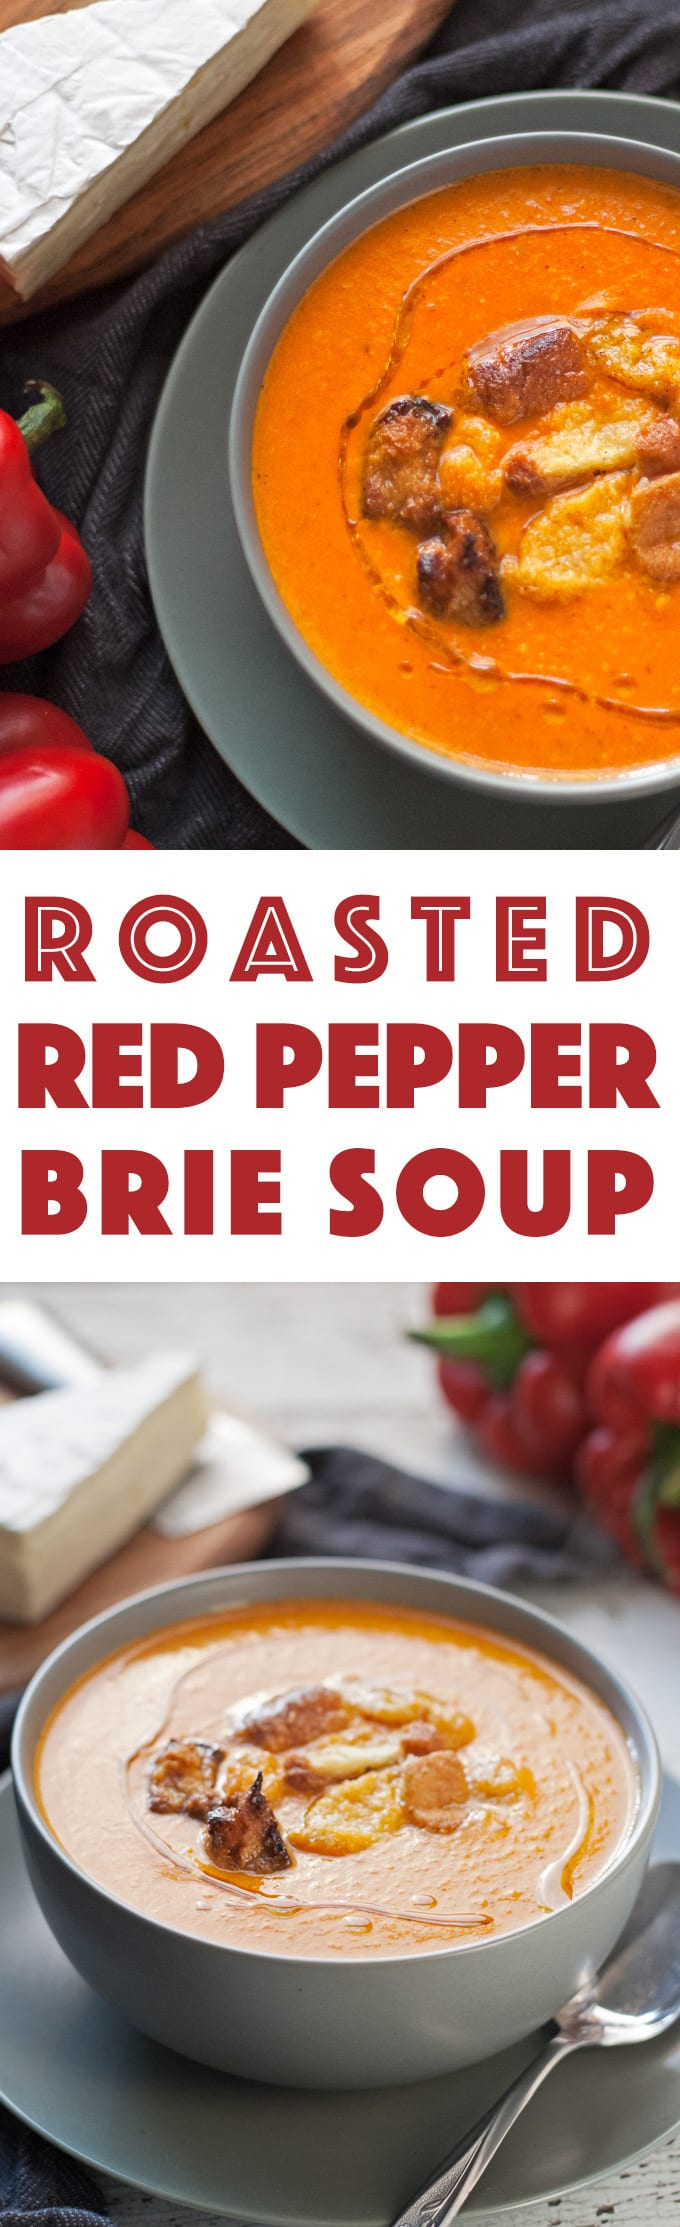 This roasted red pepper brie soup is creamy and smooth. Serve it with homemade croutons or crusty bread and a salad for the perfect cool-weather lunch! | honeyandbirch.com